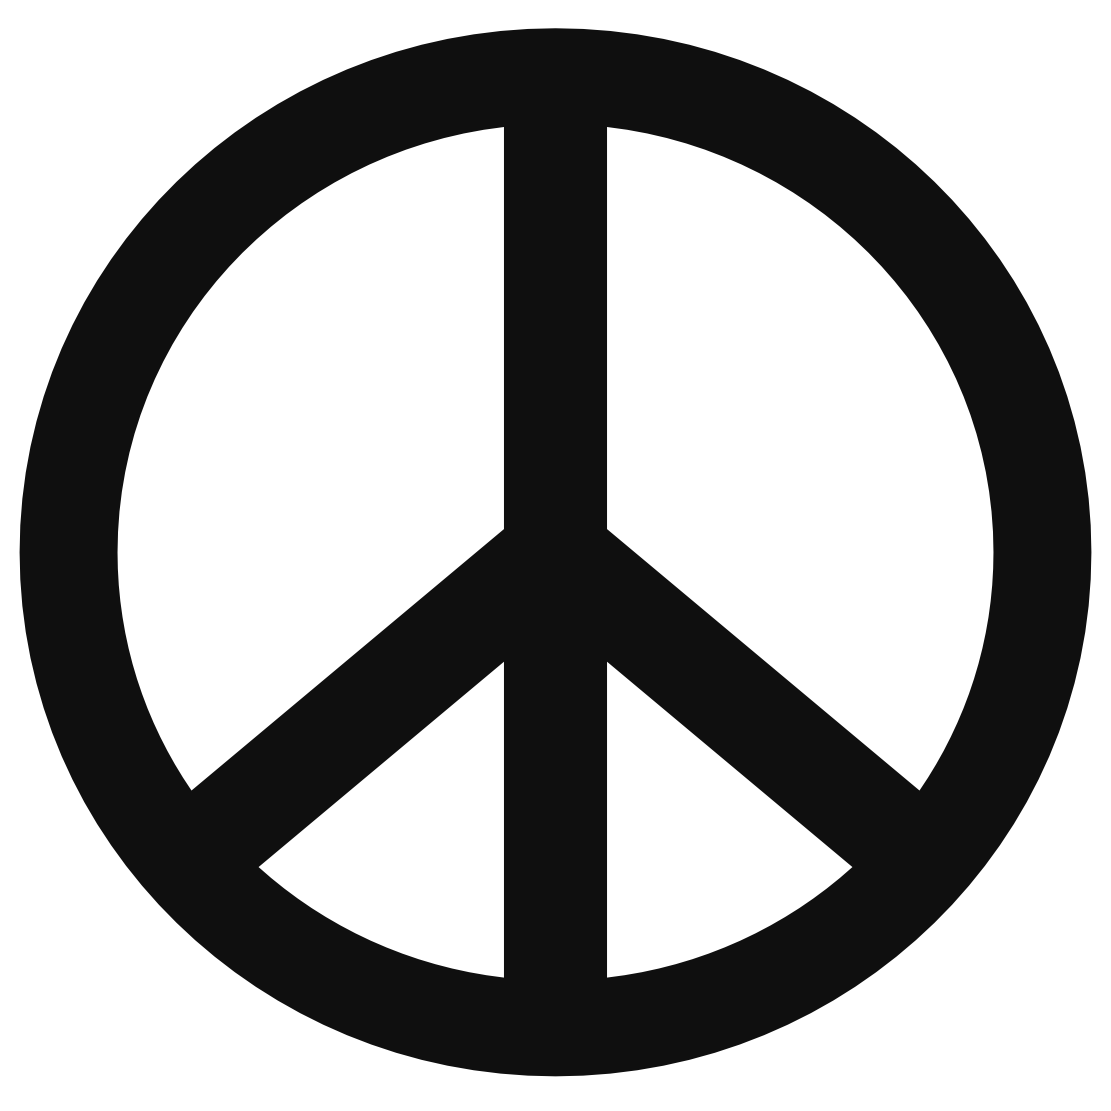 Peace sign templates clipart